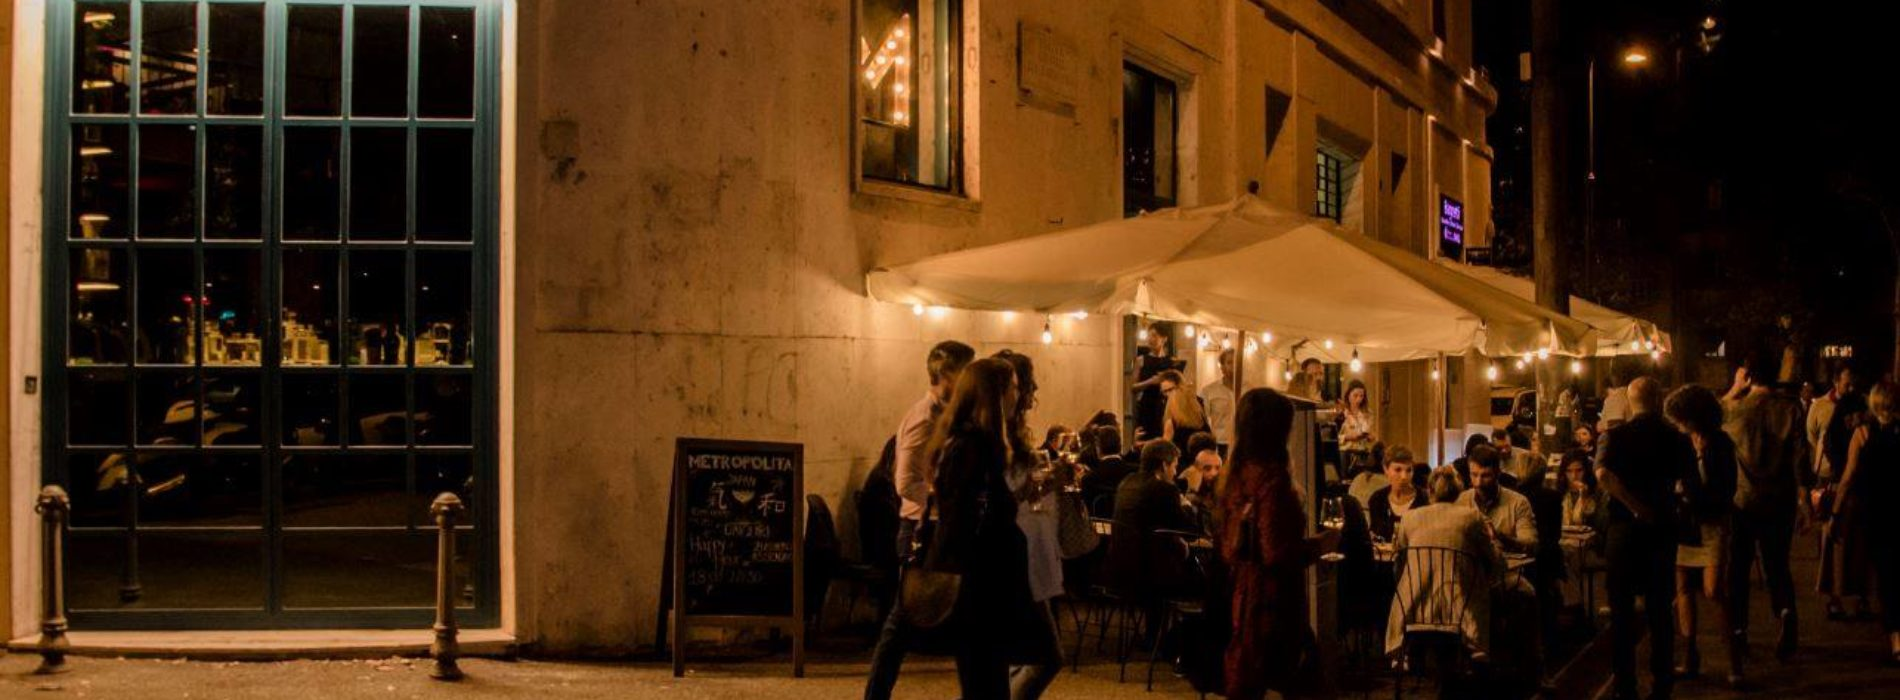 The best aperitivo in Flaminio, Rome: from Tree bar to Metropolita, both wine and cocktails